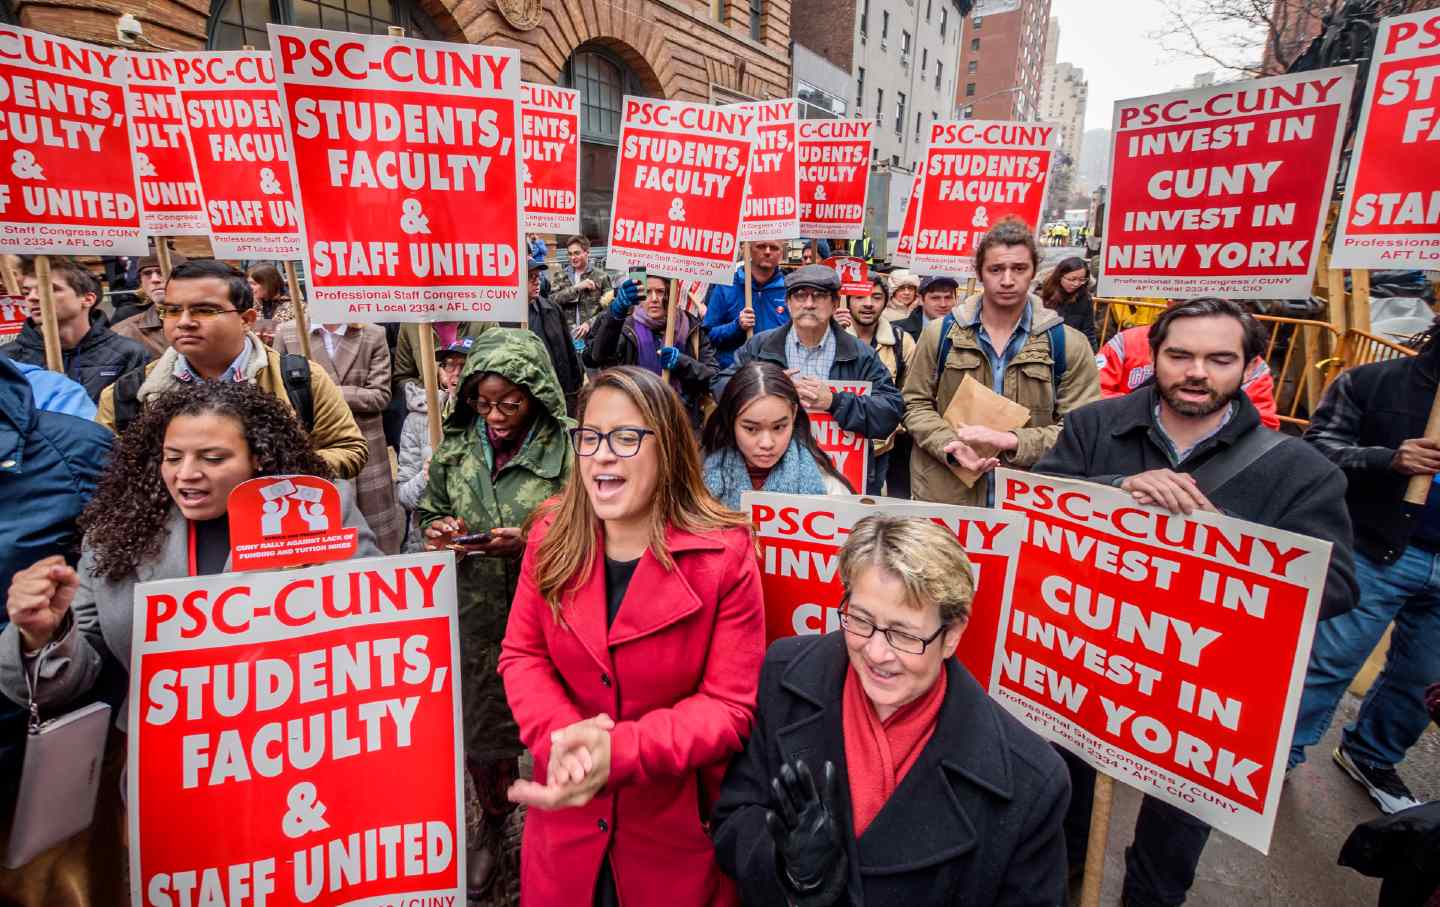 Protest outside Baruch College